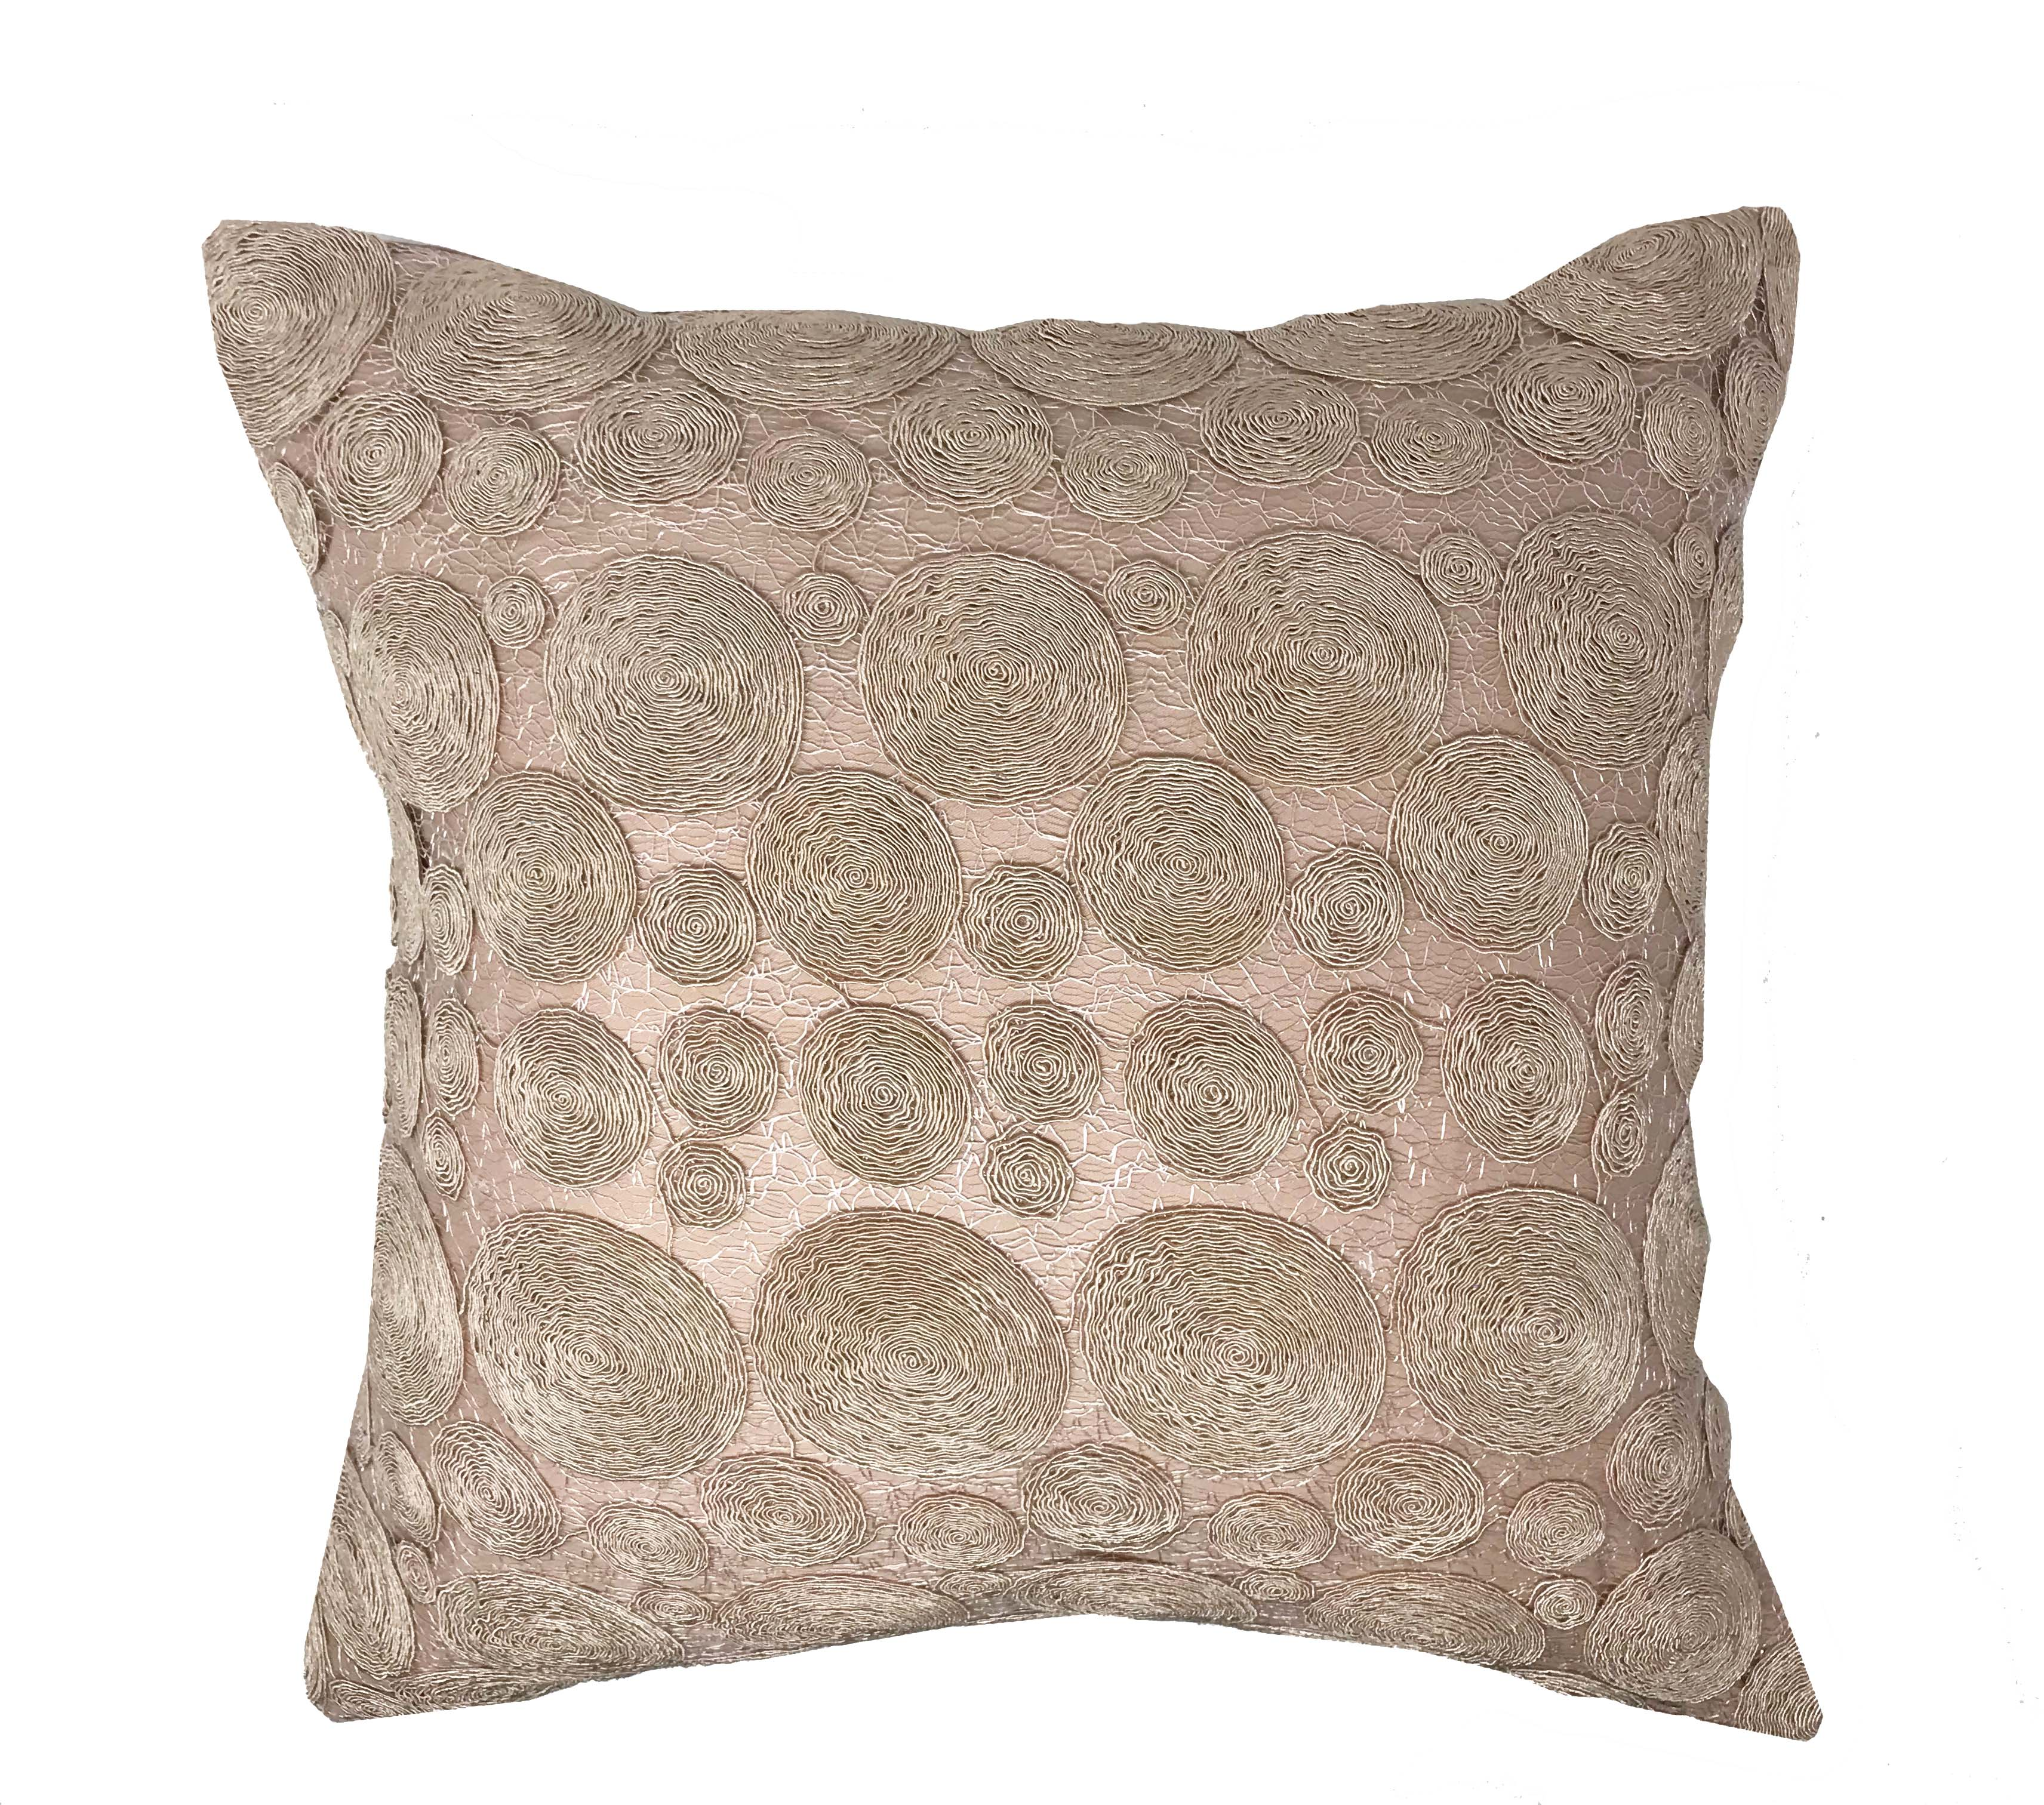 Bessie Lace Blush Rose 100% Cotton 43cm x43cm Cushion Cover Only - RRP£13.99